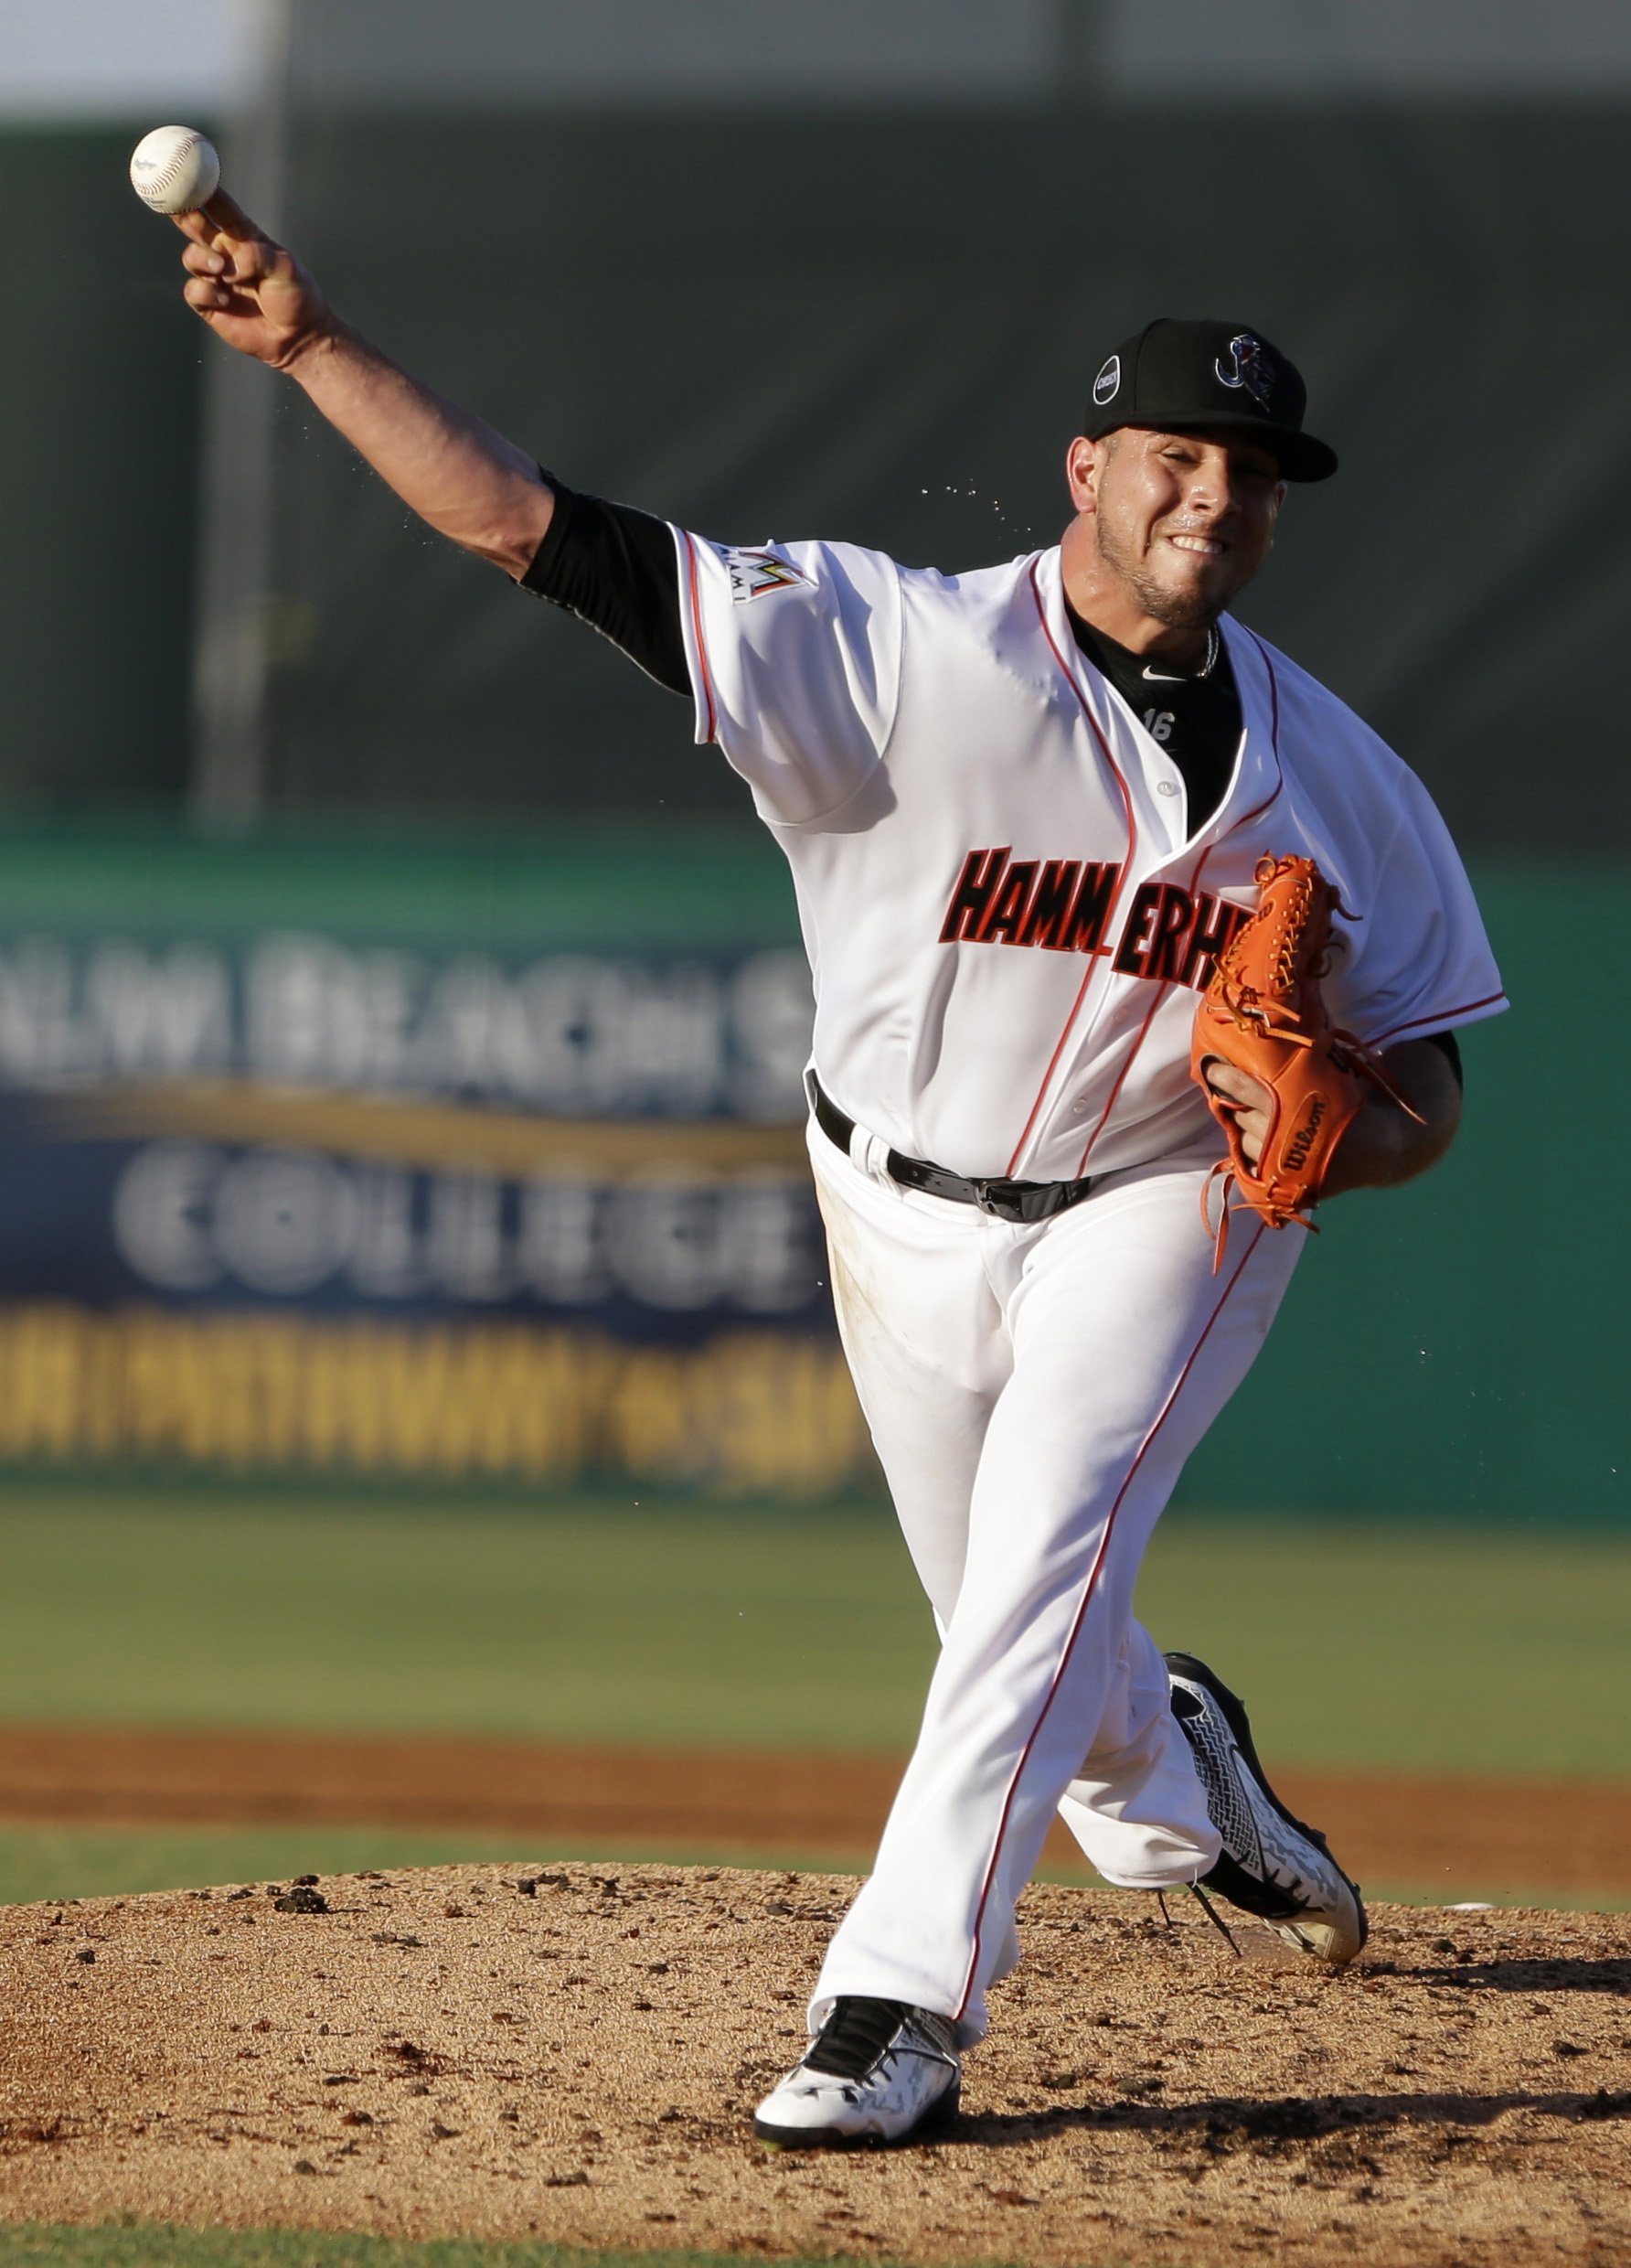 Miami Marlins' Jose Fernandez delivers a pitch during the second inning of a minor-league baseball game between the Jupiter Hammerheads and the St. Lucie Mets, Monday, June 22, 2015, in Jupiter, Fla. Fernandez had his biggest test yet in the rehab process